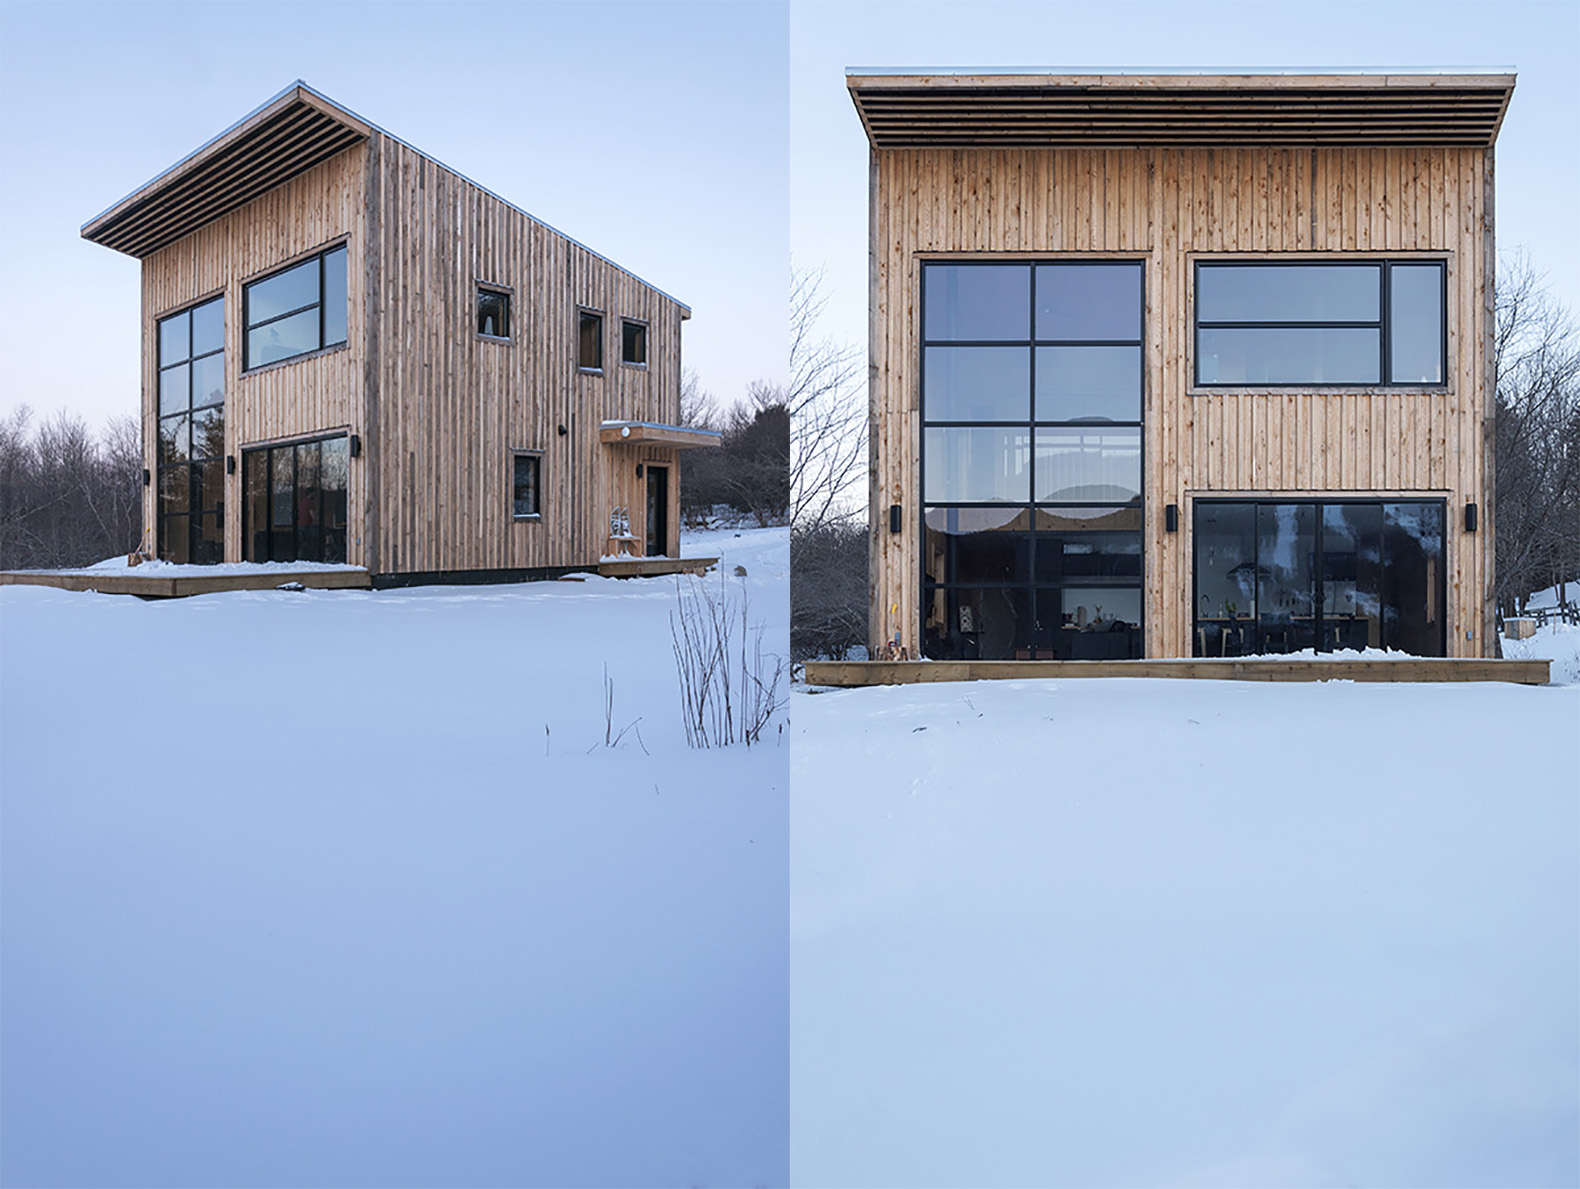 Young carpenter builds cost effective timber cabin for his for Cost effective house building